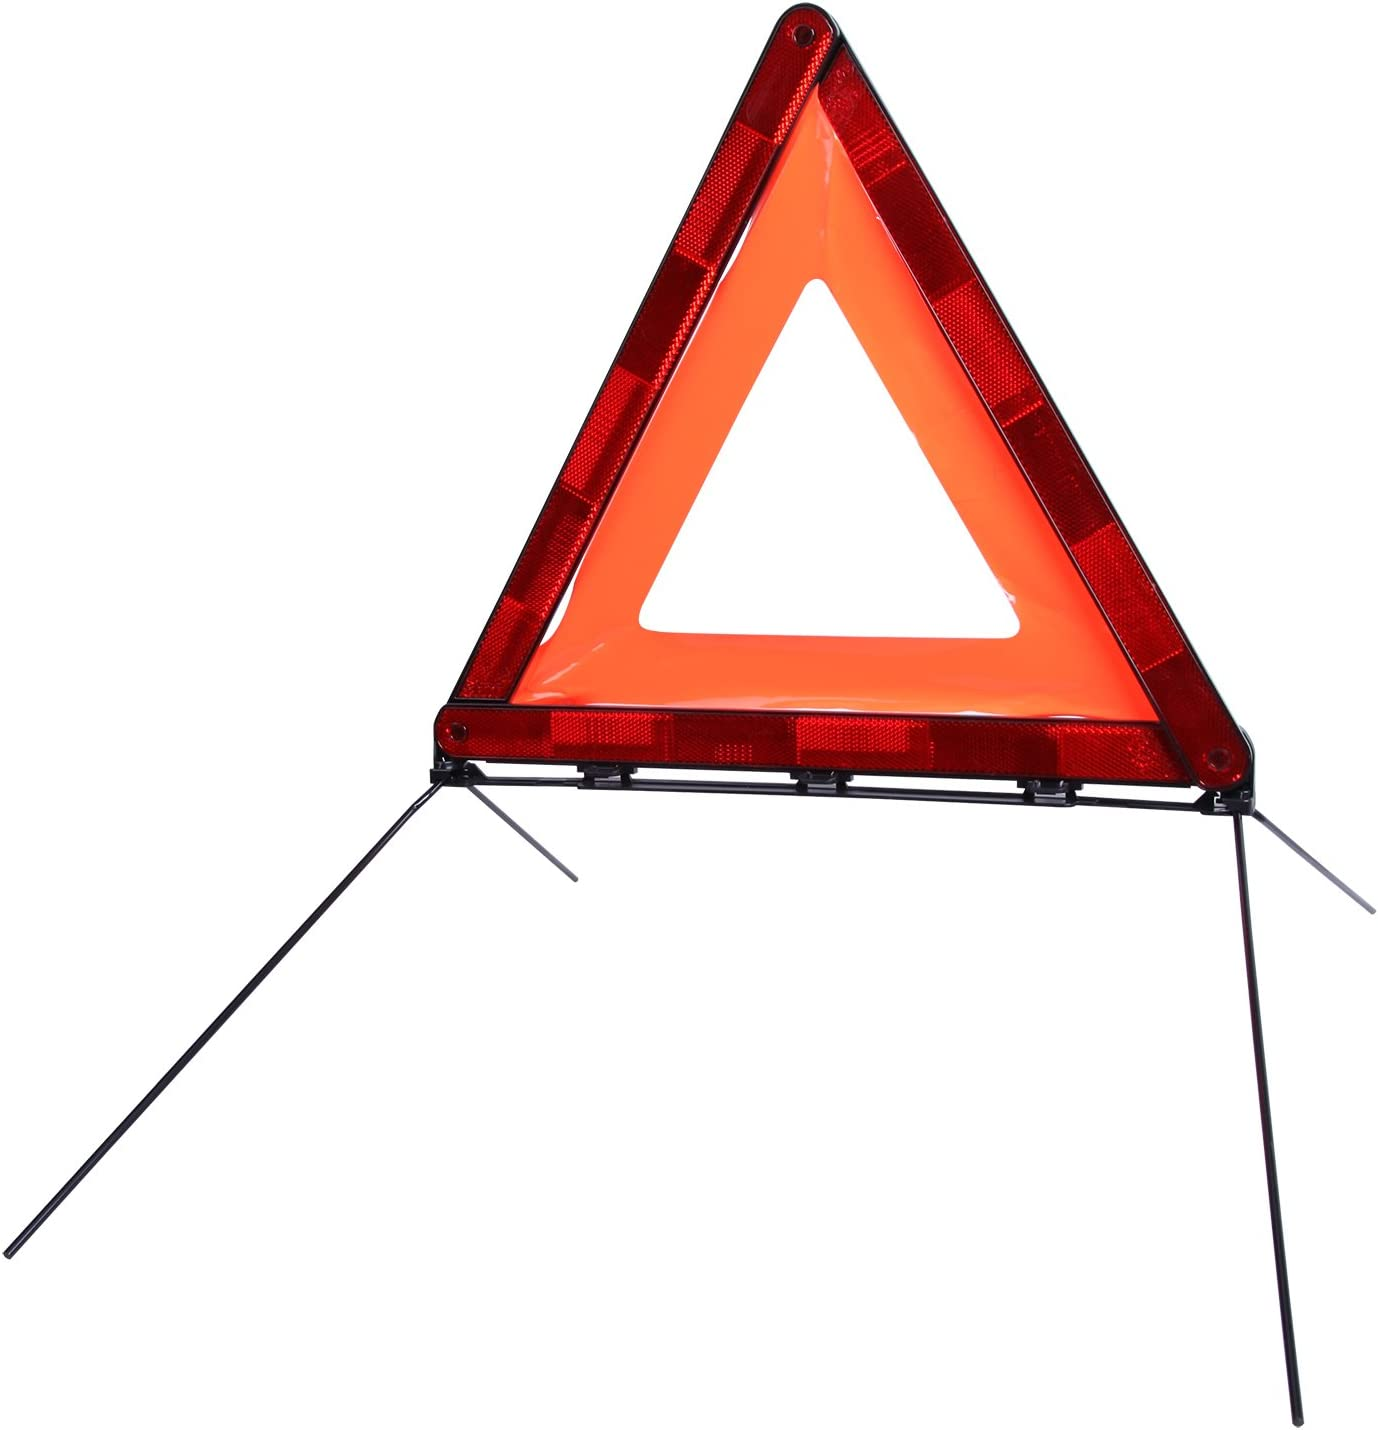 CARTMAN Foldable Warning Triangle Emergency Warning Triangle Reflector Safety Triangle Kit 3-Pack with Storage Case